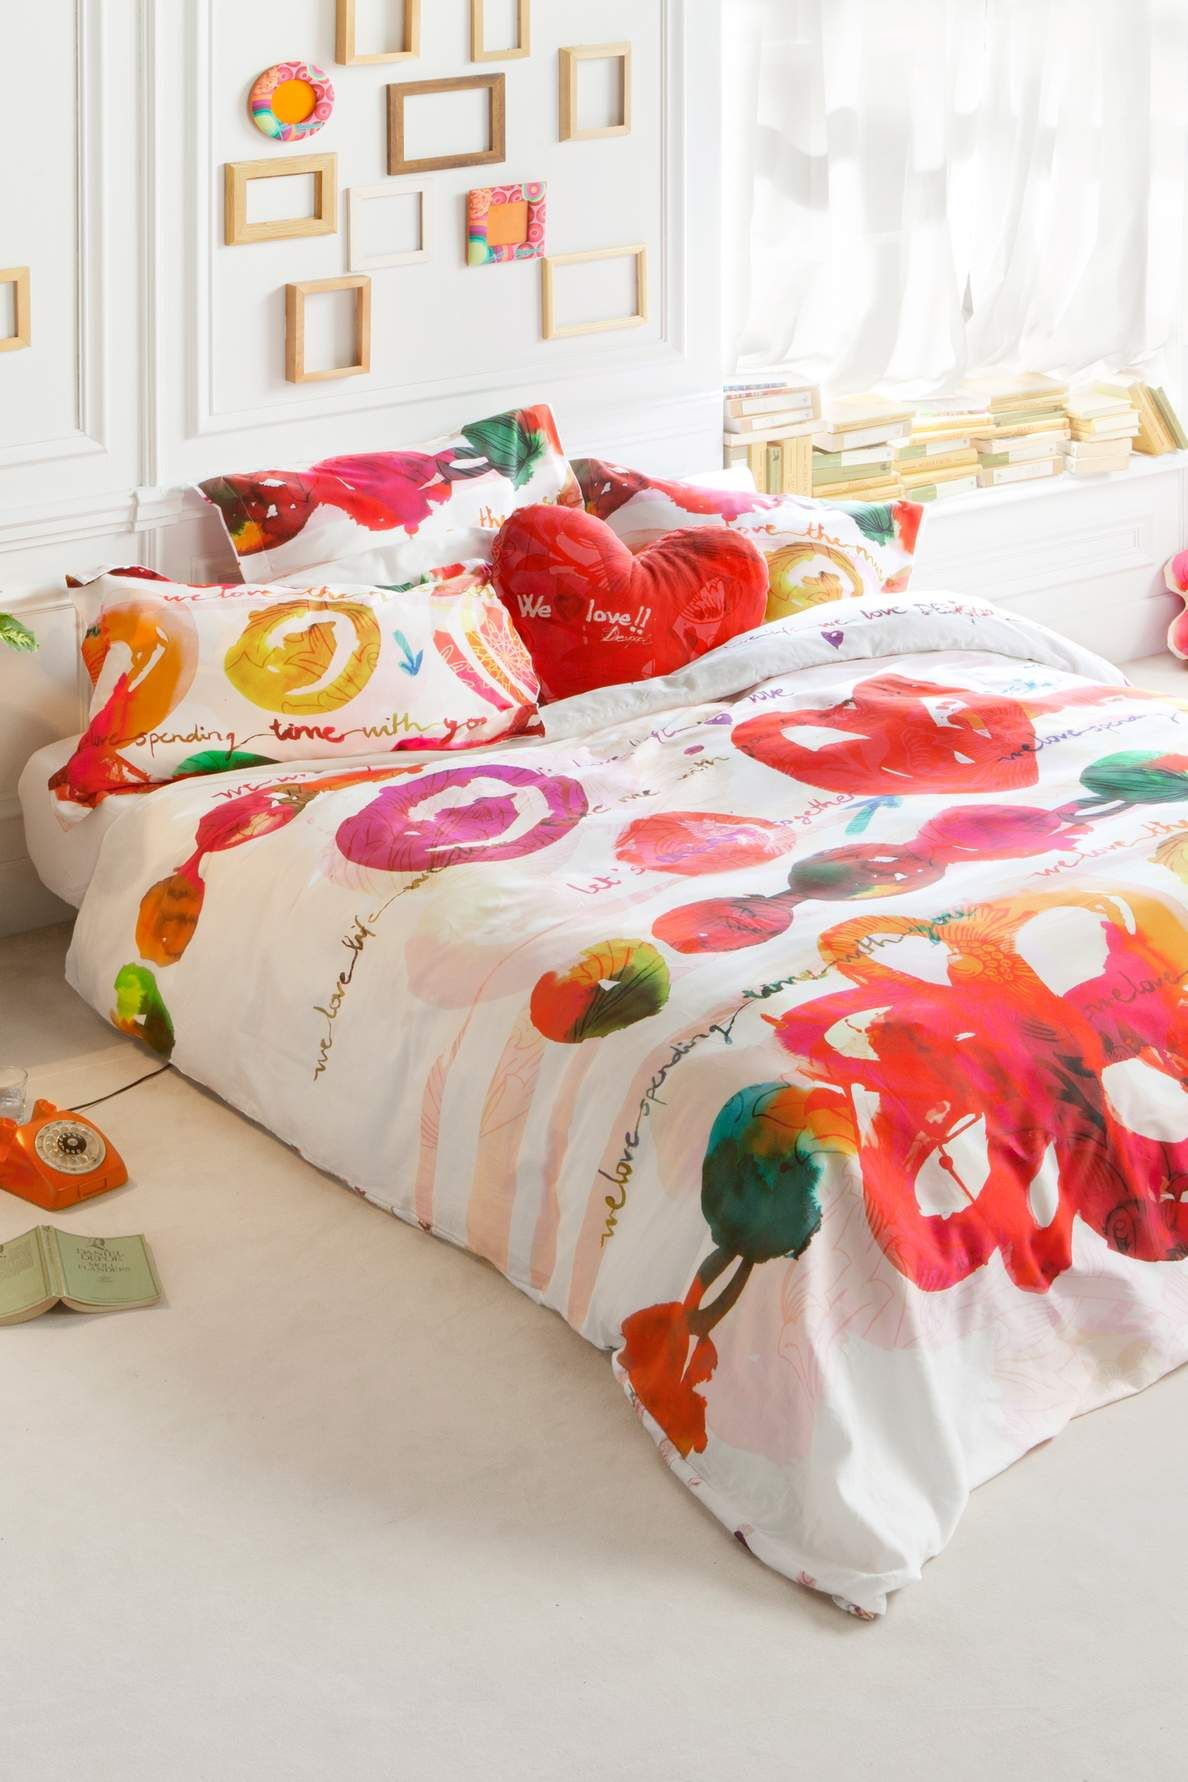 DESIGUAL Love party home collection | I ♥ Boho Home | Pinterest